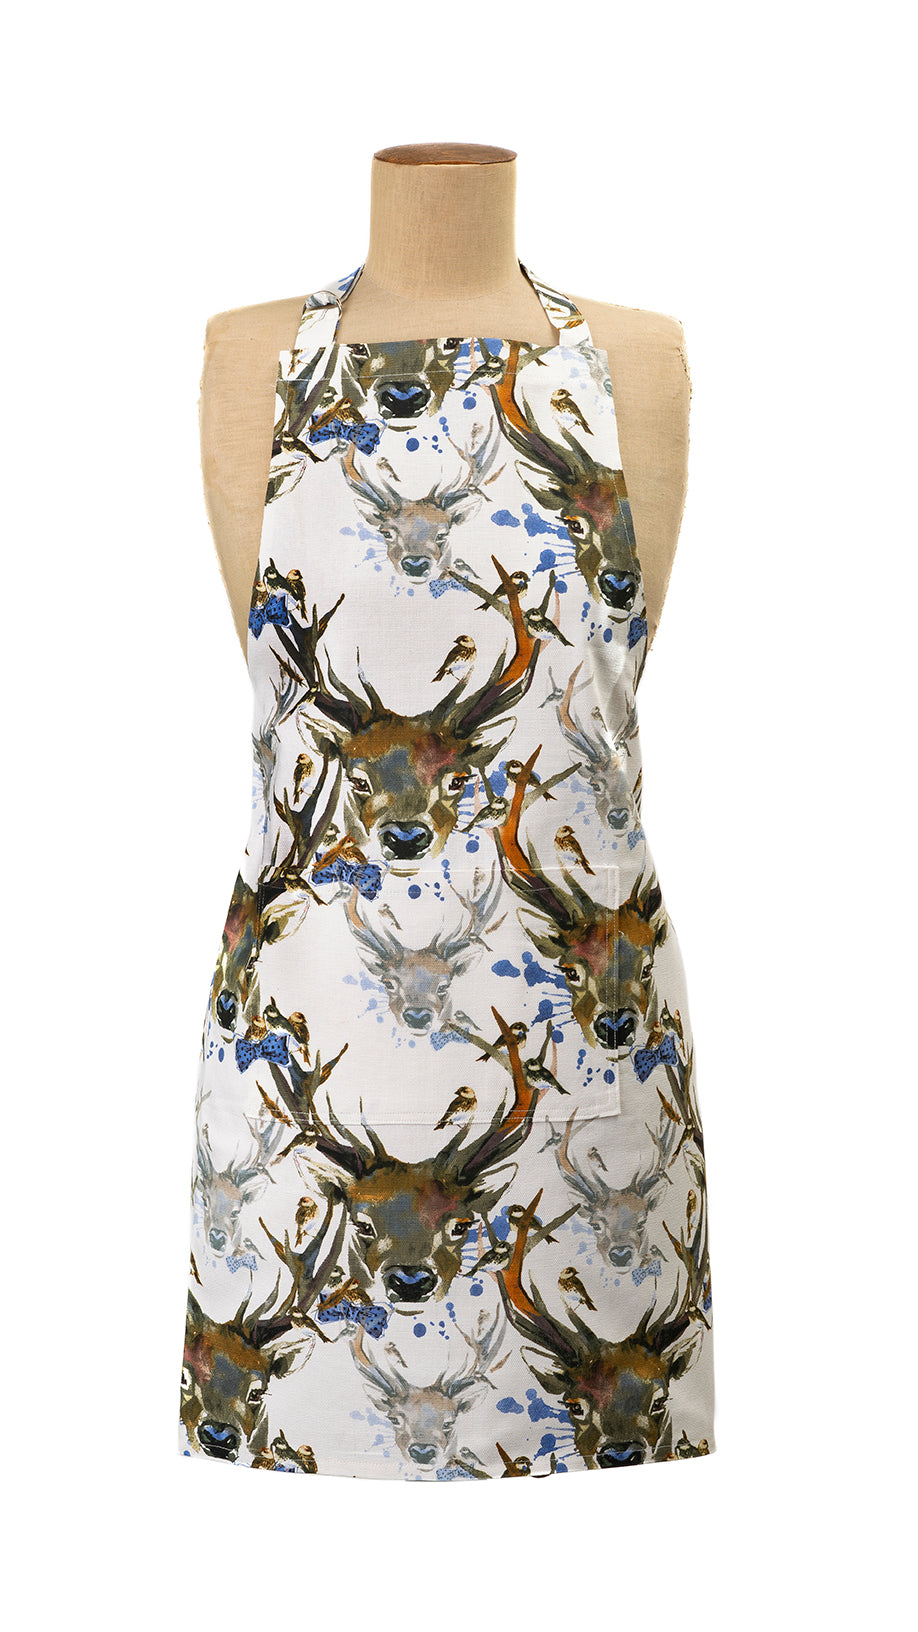 Stag in Forest apron by Templestowe Auxiliary